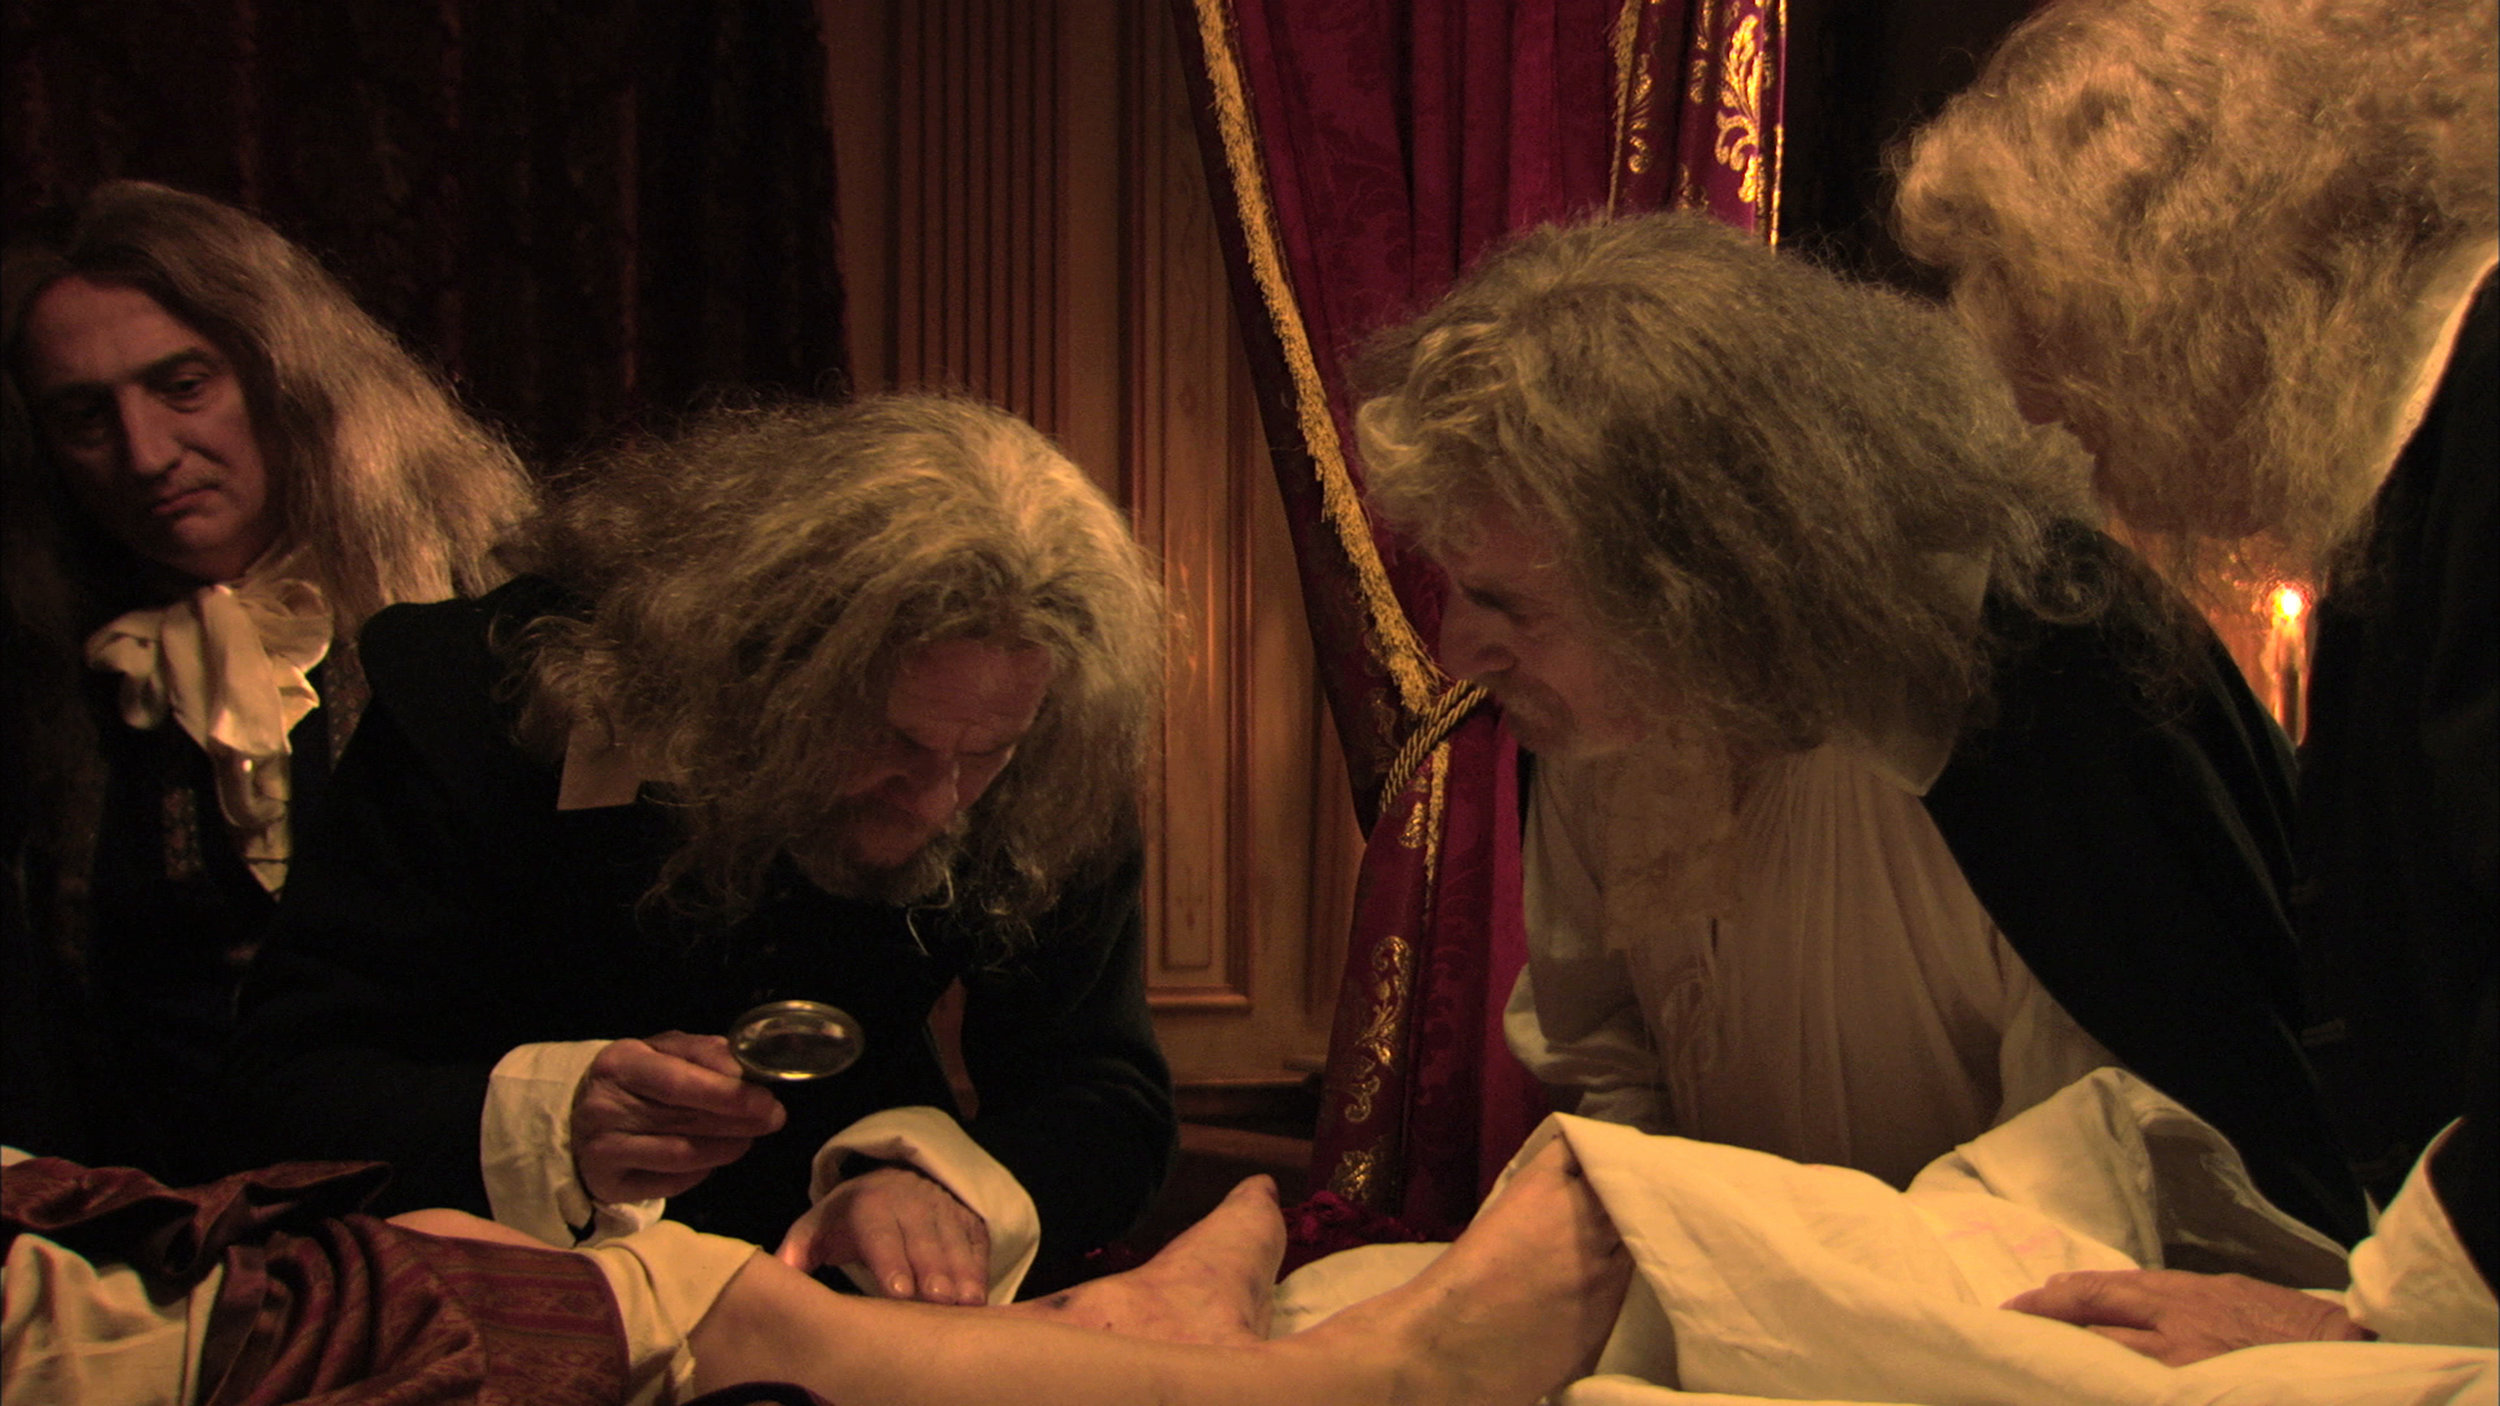 Marc Susini, Phillipe Crespeau and others in a scene from  The Death of Louis XIV.  Courtesy of Cinema Guild.